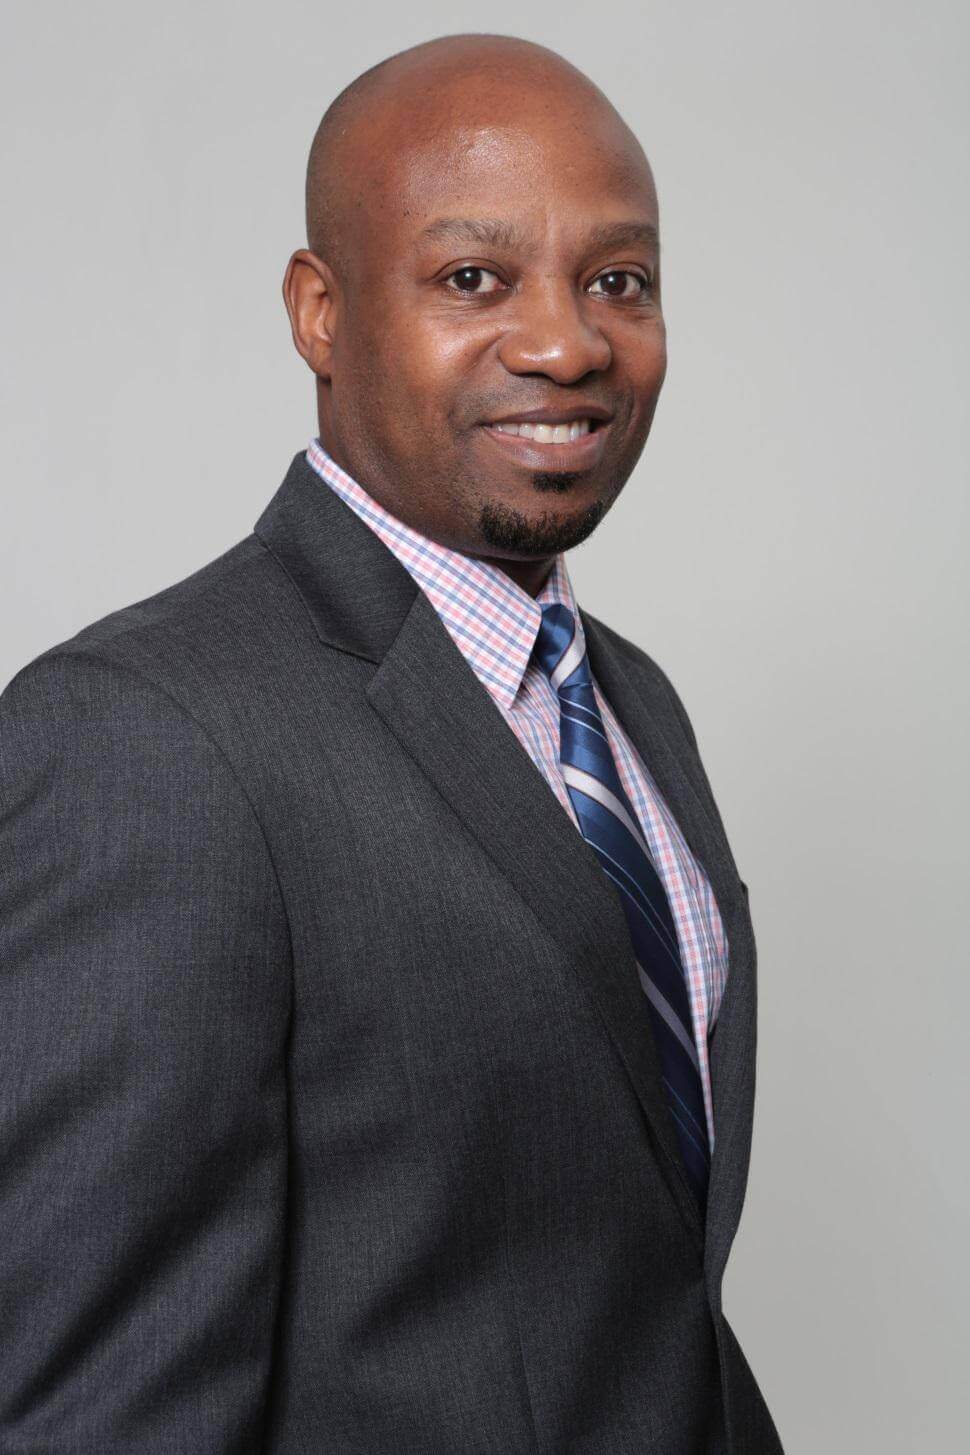 Dr. Onuwa D. Terry